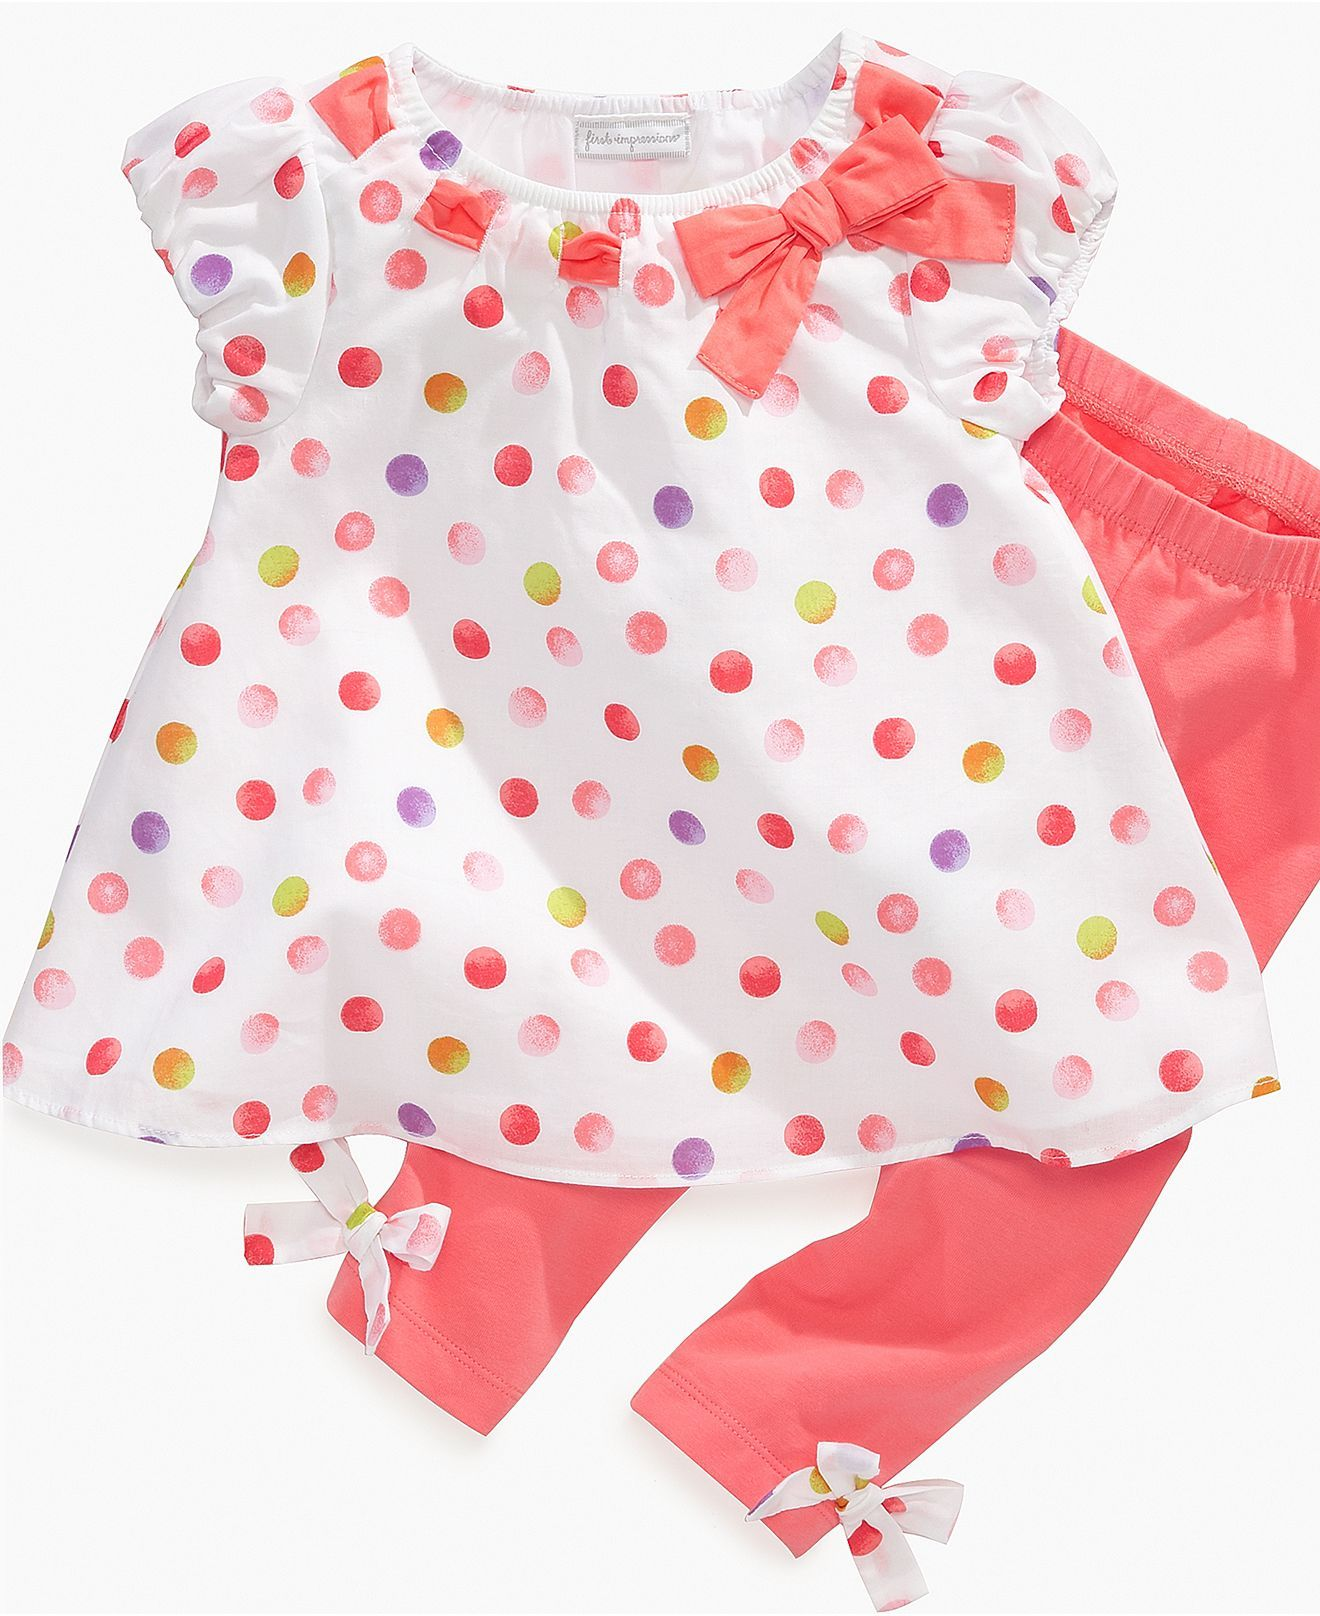 3a52c38f2 First Impressions Baby Set, Baby Girls Multi-Dot Tunic and Leggings ...